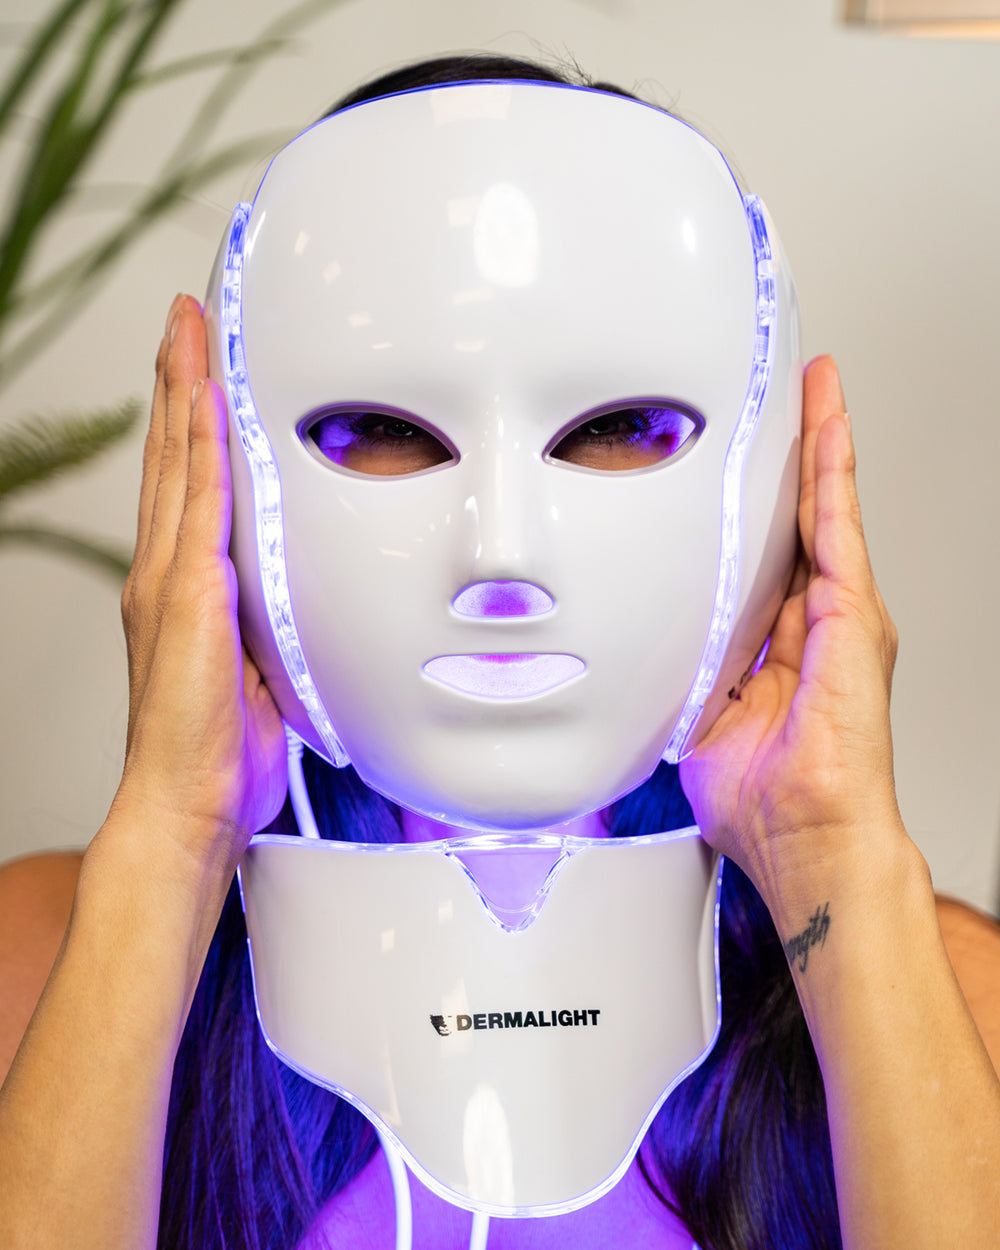 Derma-Light-Mask-LED-Blue-Light-Therapy-Dermalight